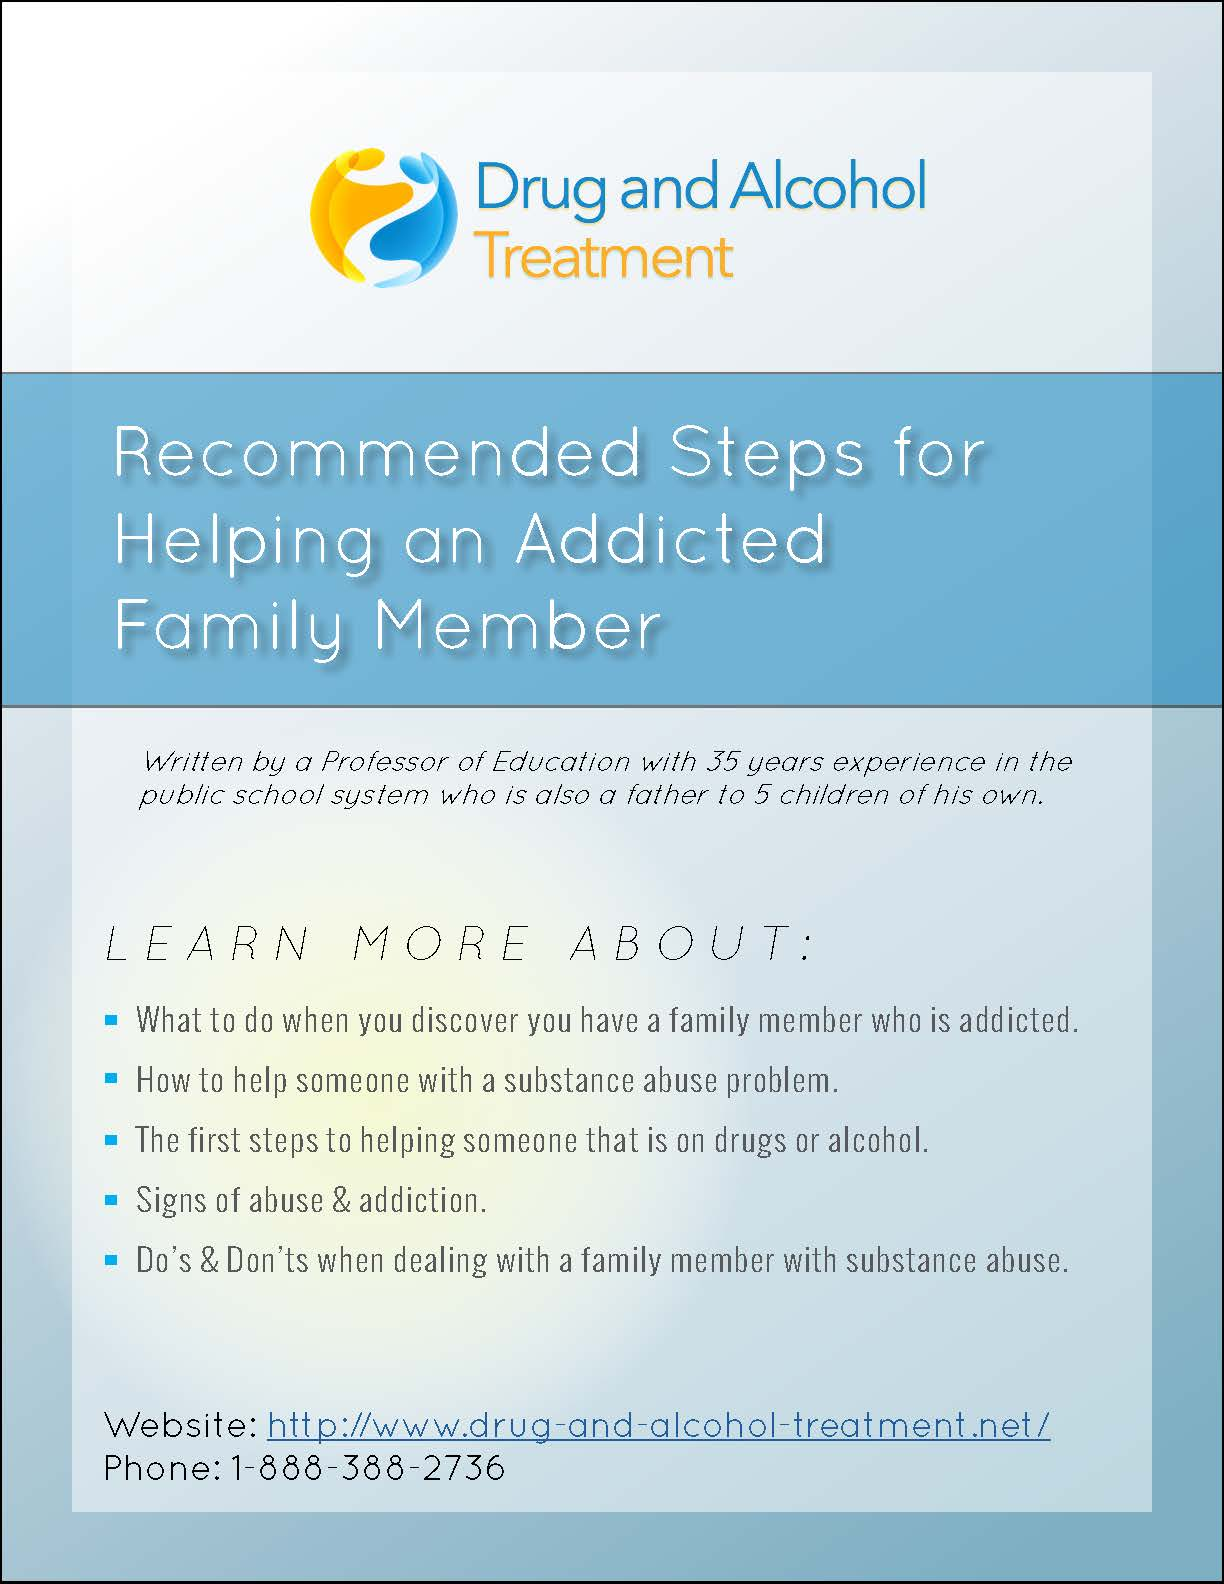 Recommended Steps for Helping an Addicted Family Member